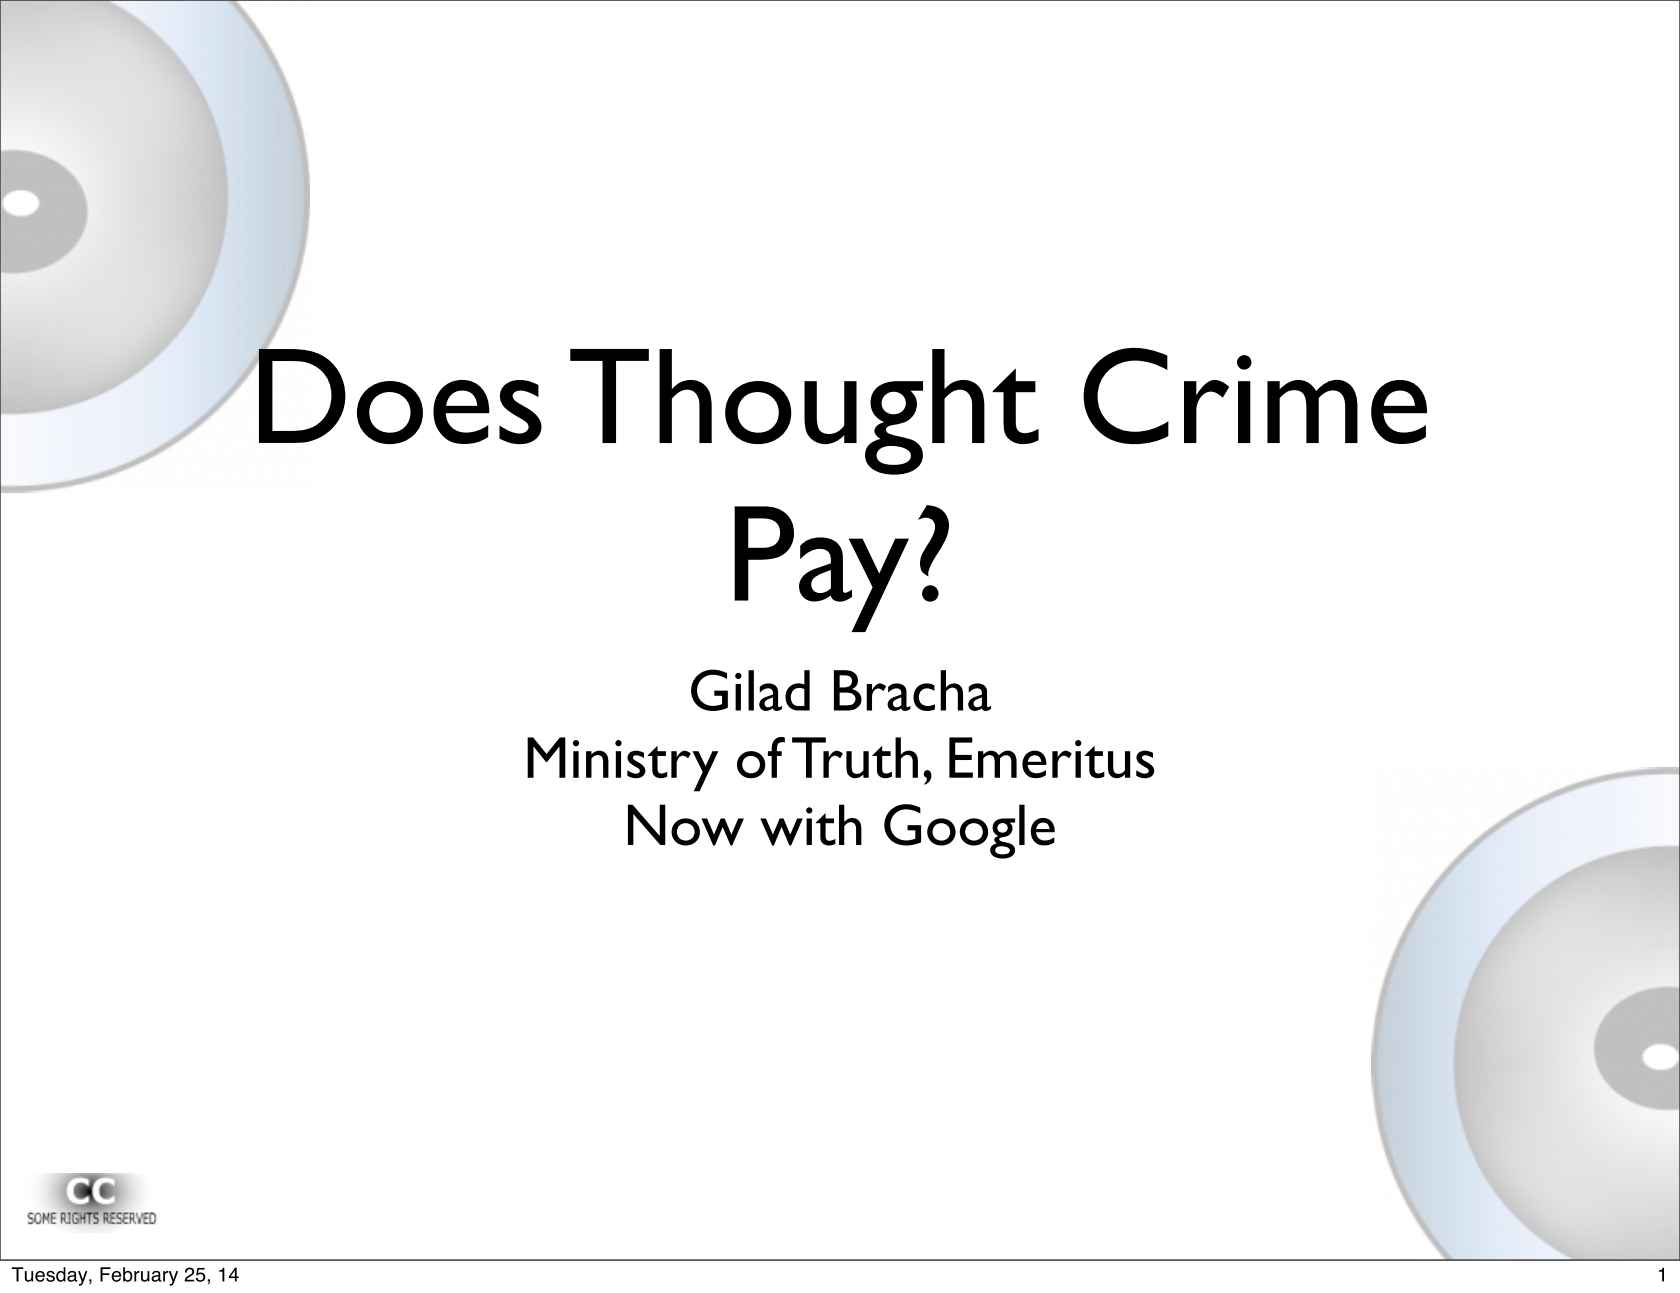 Onward! — Does Thought Crime Pay?